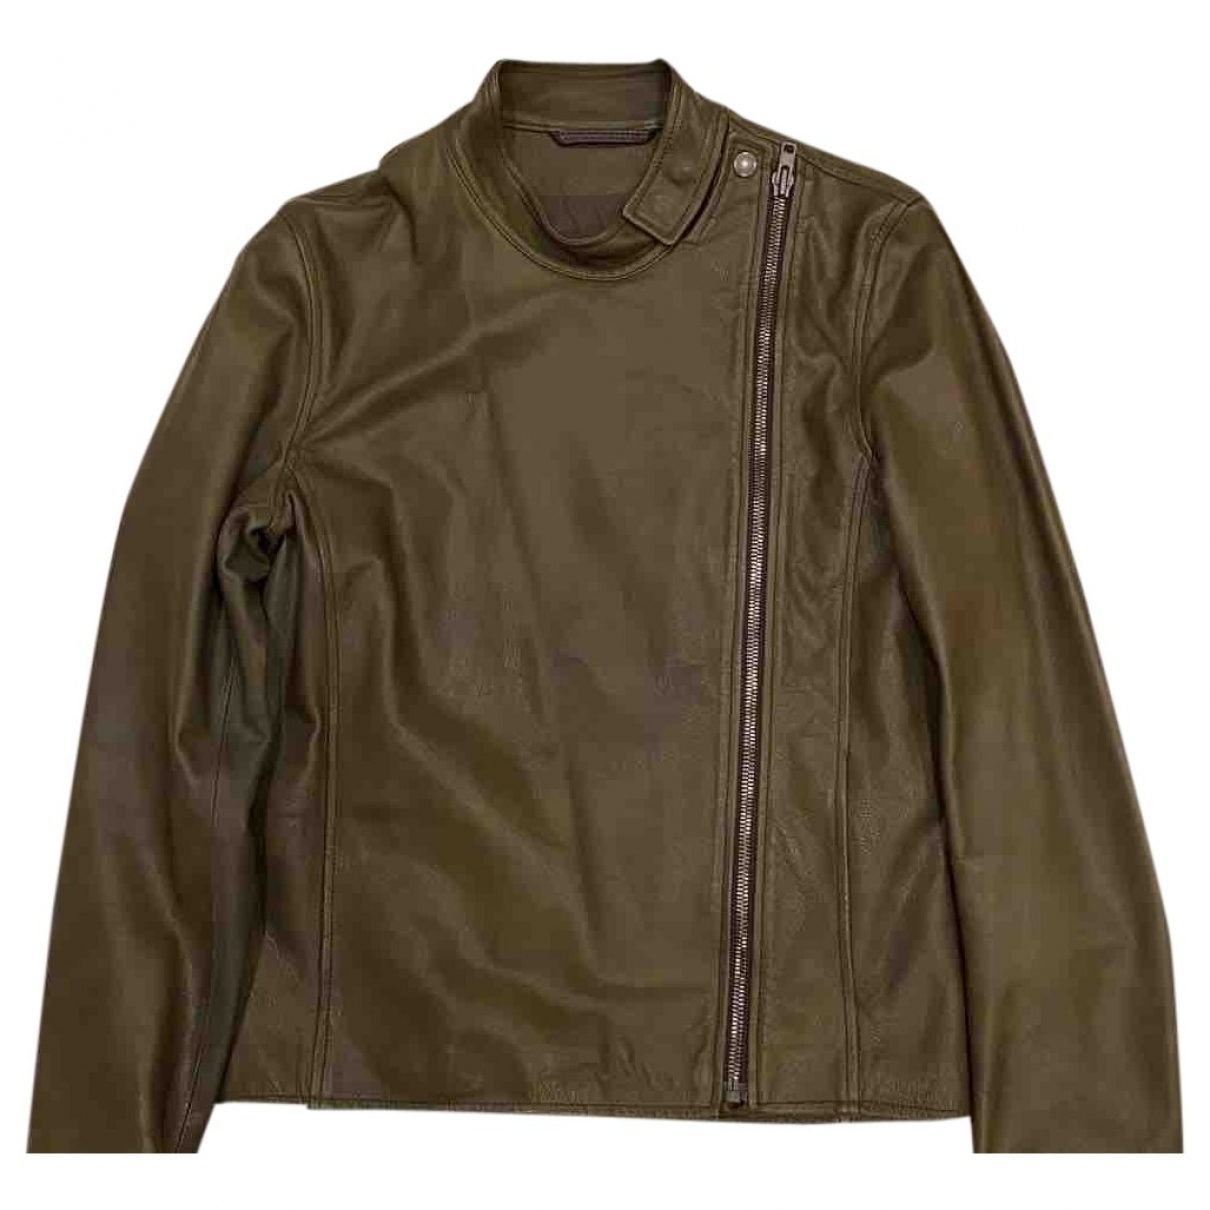 Maison Martin Margiela \N Khaki Leather jacket  for Men 48 IT